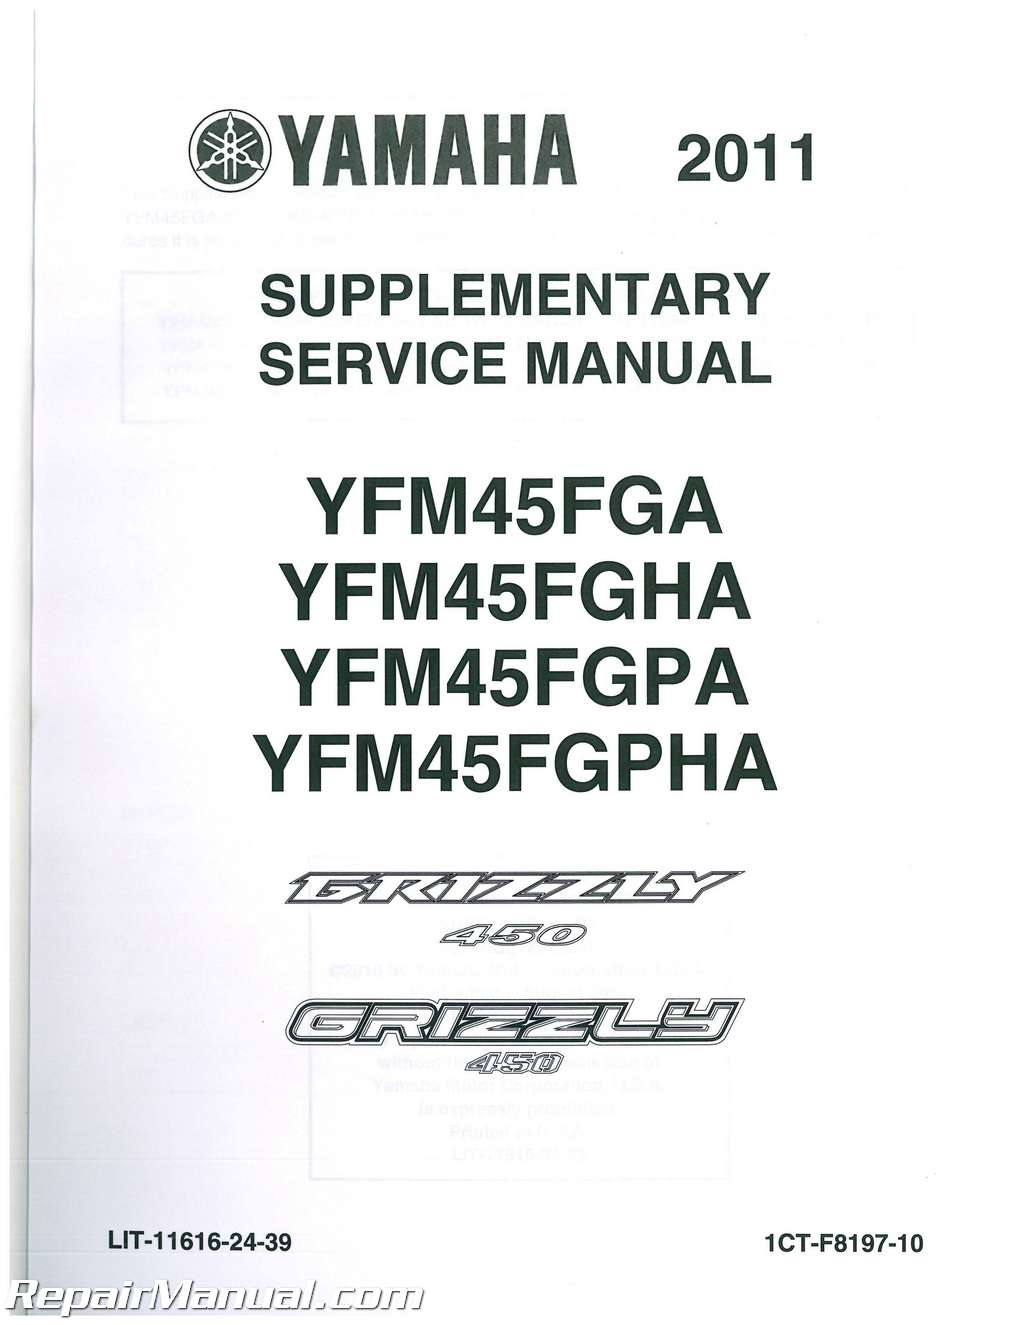 yamaha kodiak 450 wiring diagram 2000 yamaha kodiak 400 2007 Suzuki XL7  Battery Location 2008 Suzuki XL7 Problems